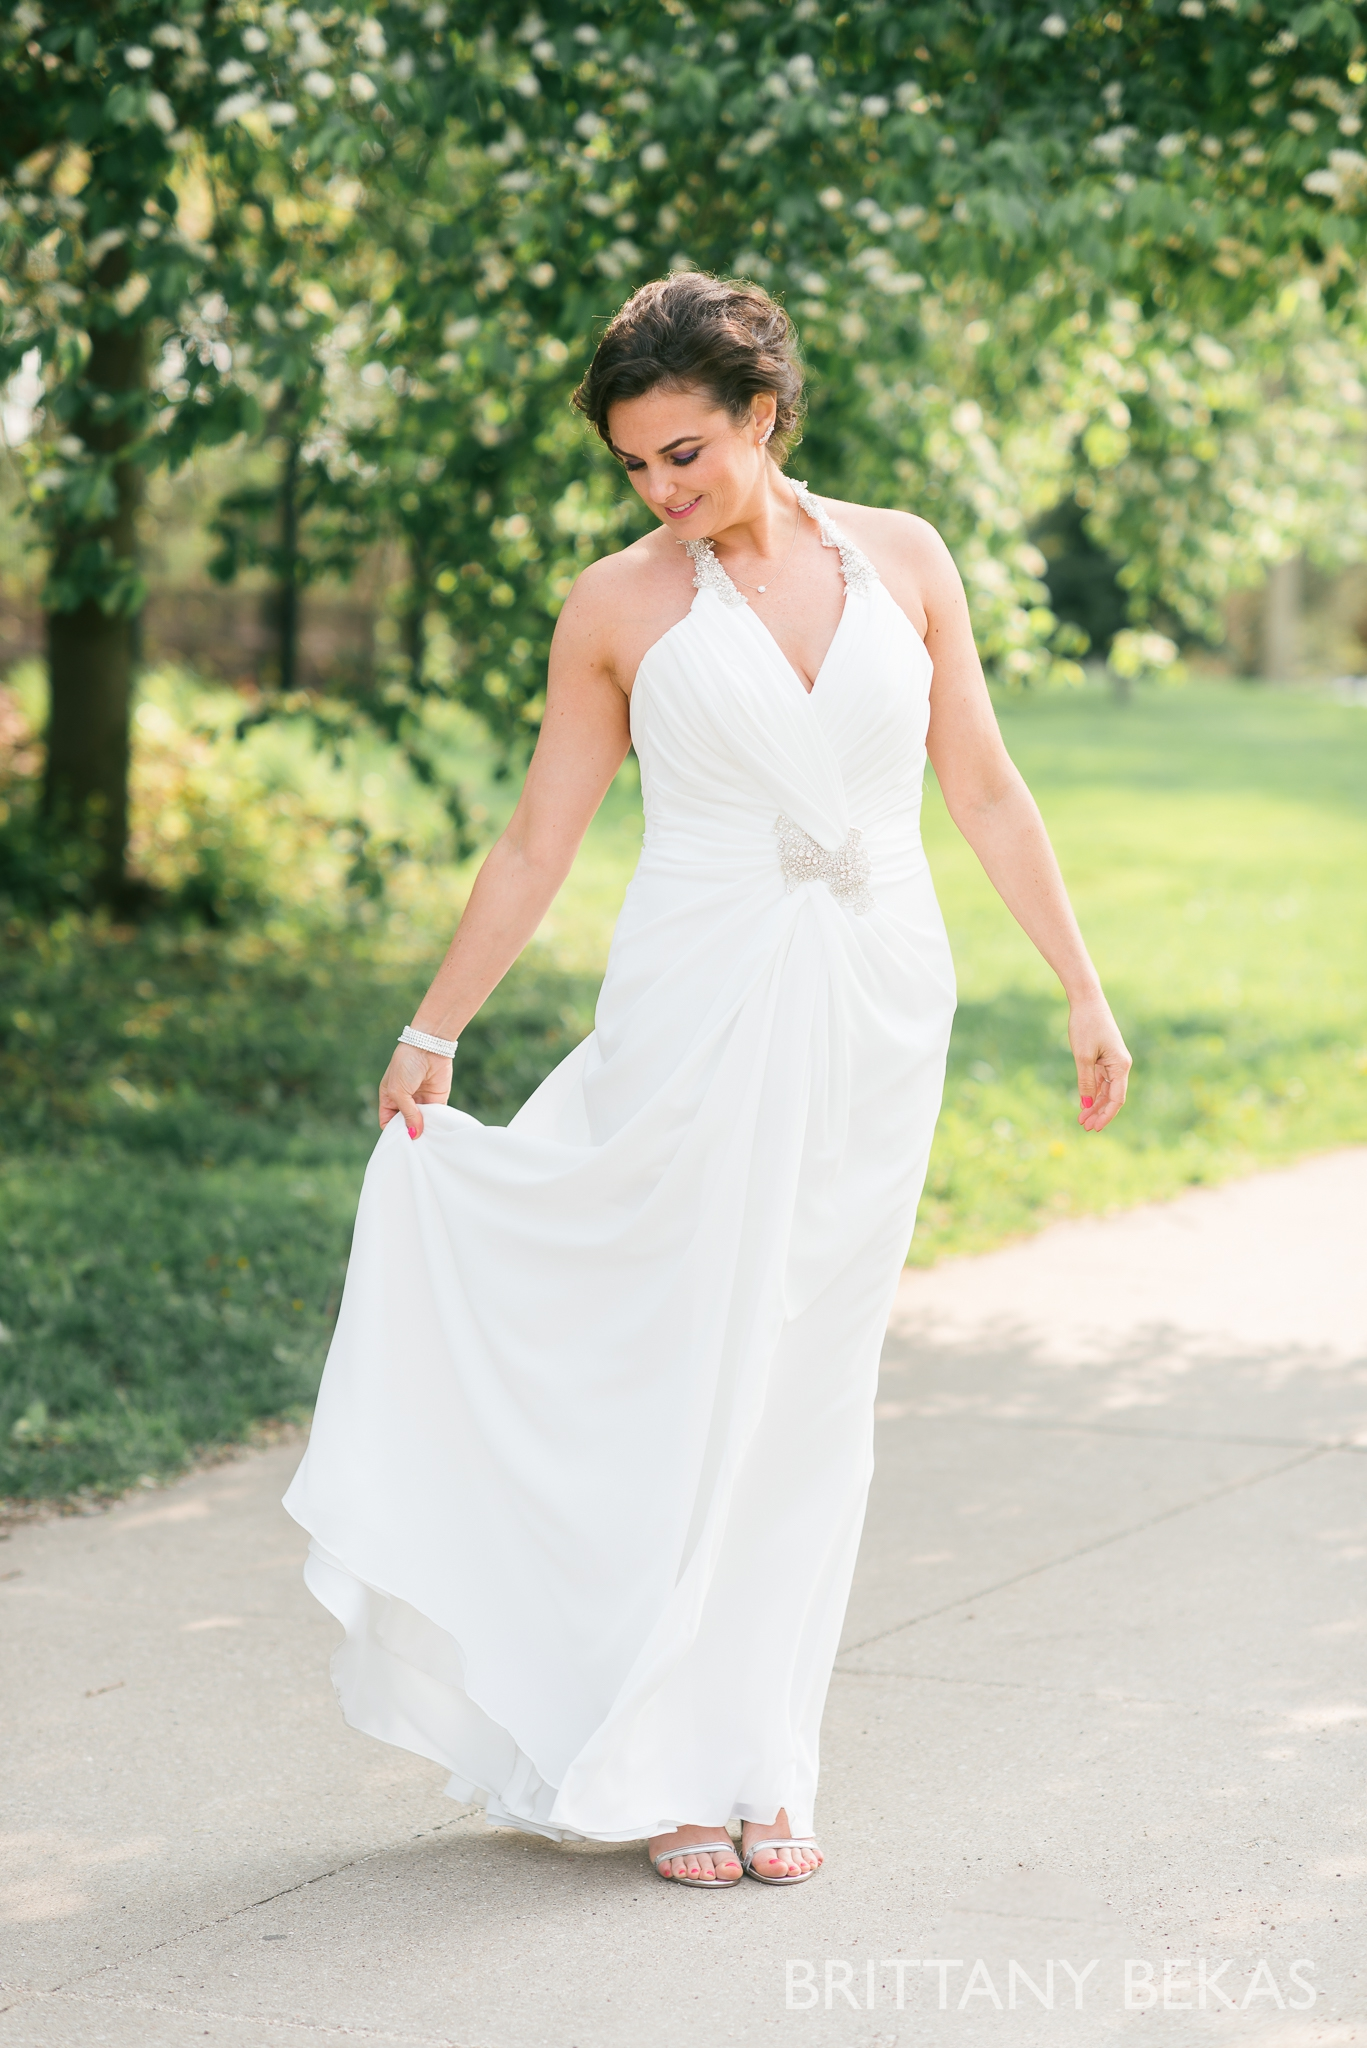 Chicago Wedding - Ravenswood Event Center Wedding Photos_0012